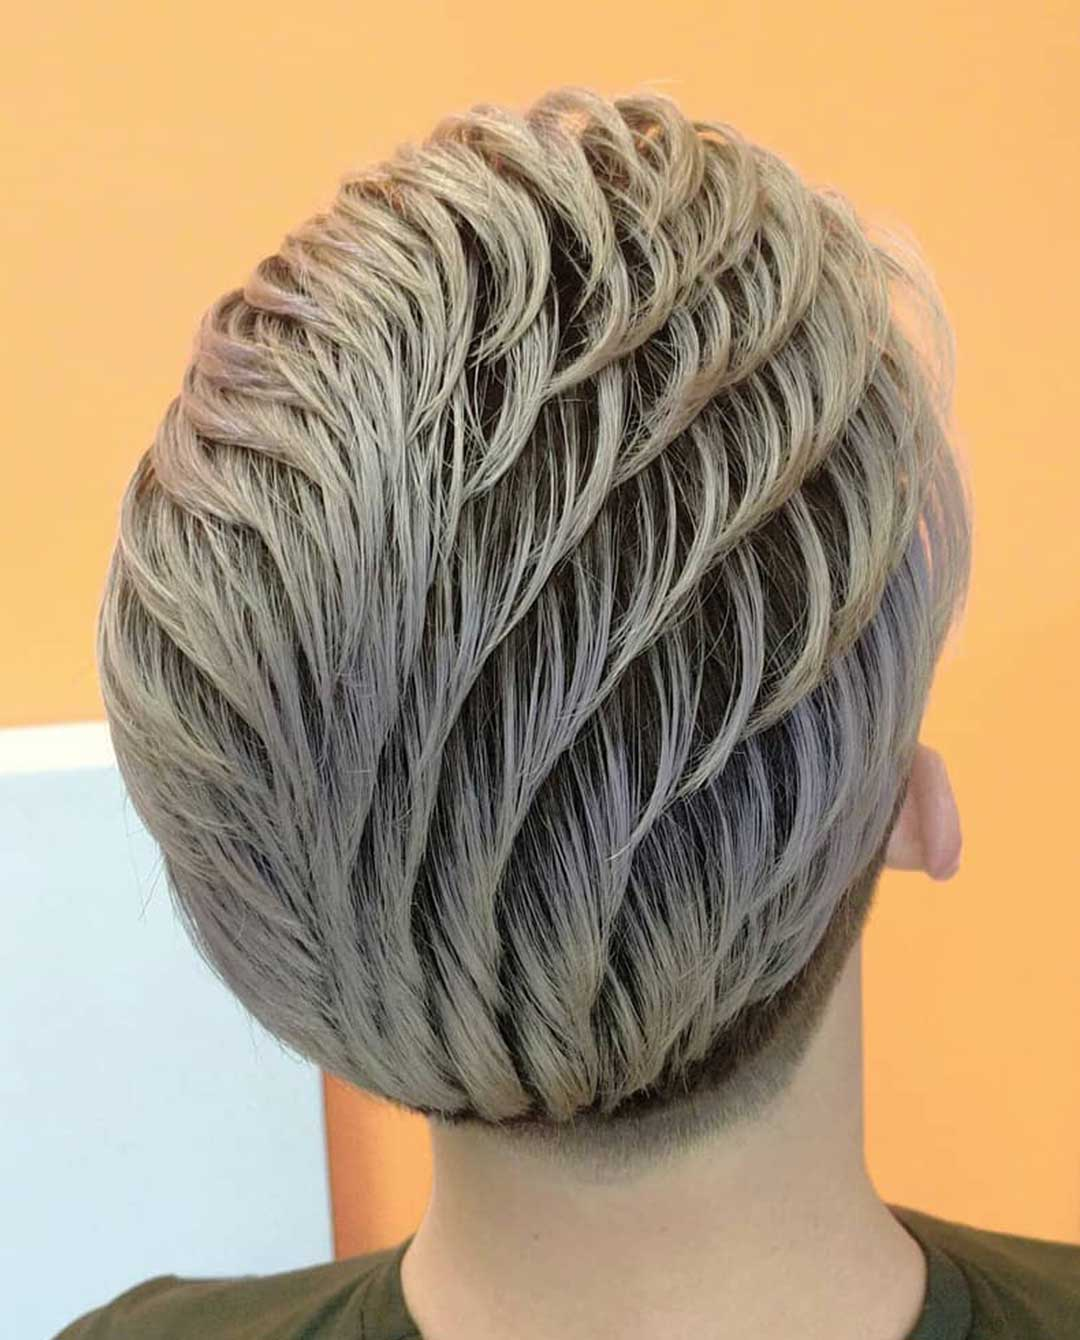 Blonde Slicked Back with Textures